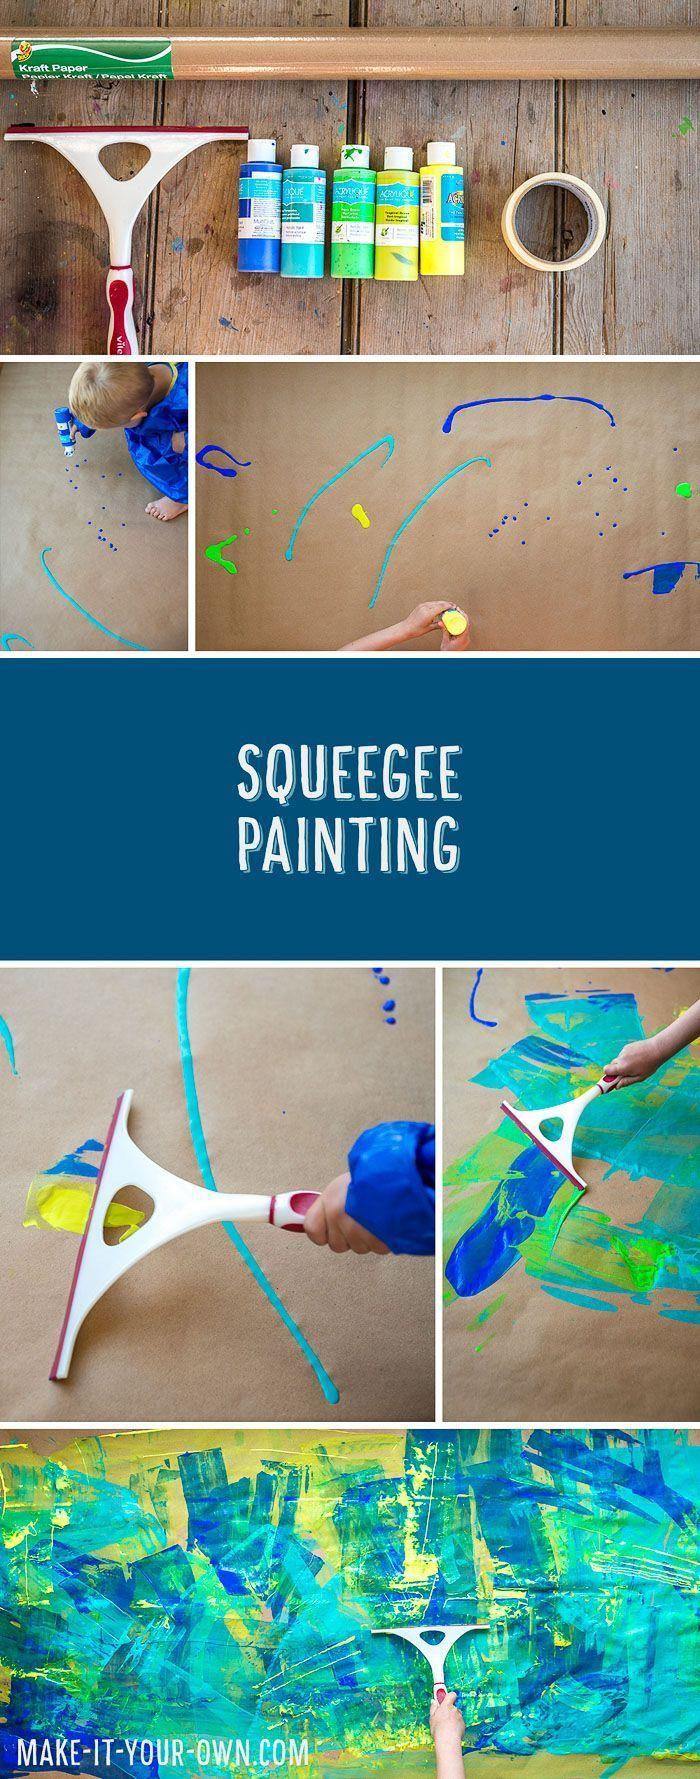 the case of the squeegee kids Poverty is complex in gendered and racialized lives and as it is experienced by indigenous people, people with disabilities, children, homeless people, squeegee kids, alcoholics, sex workers, people with mental health issues, drug addicts, et cetera.